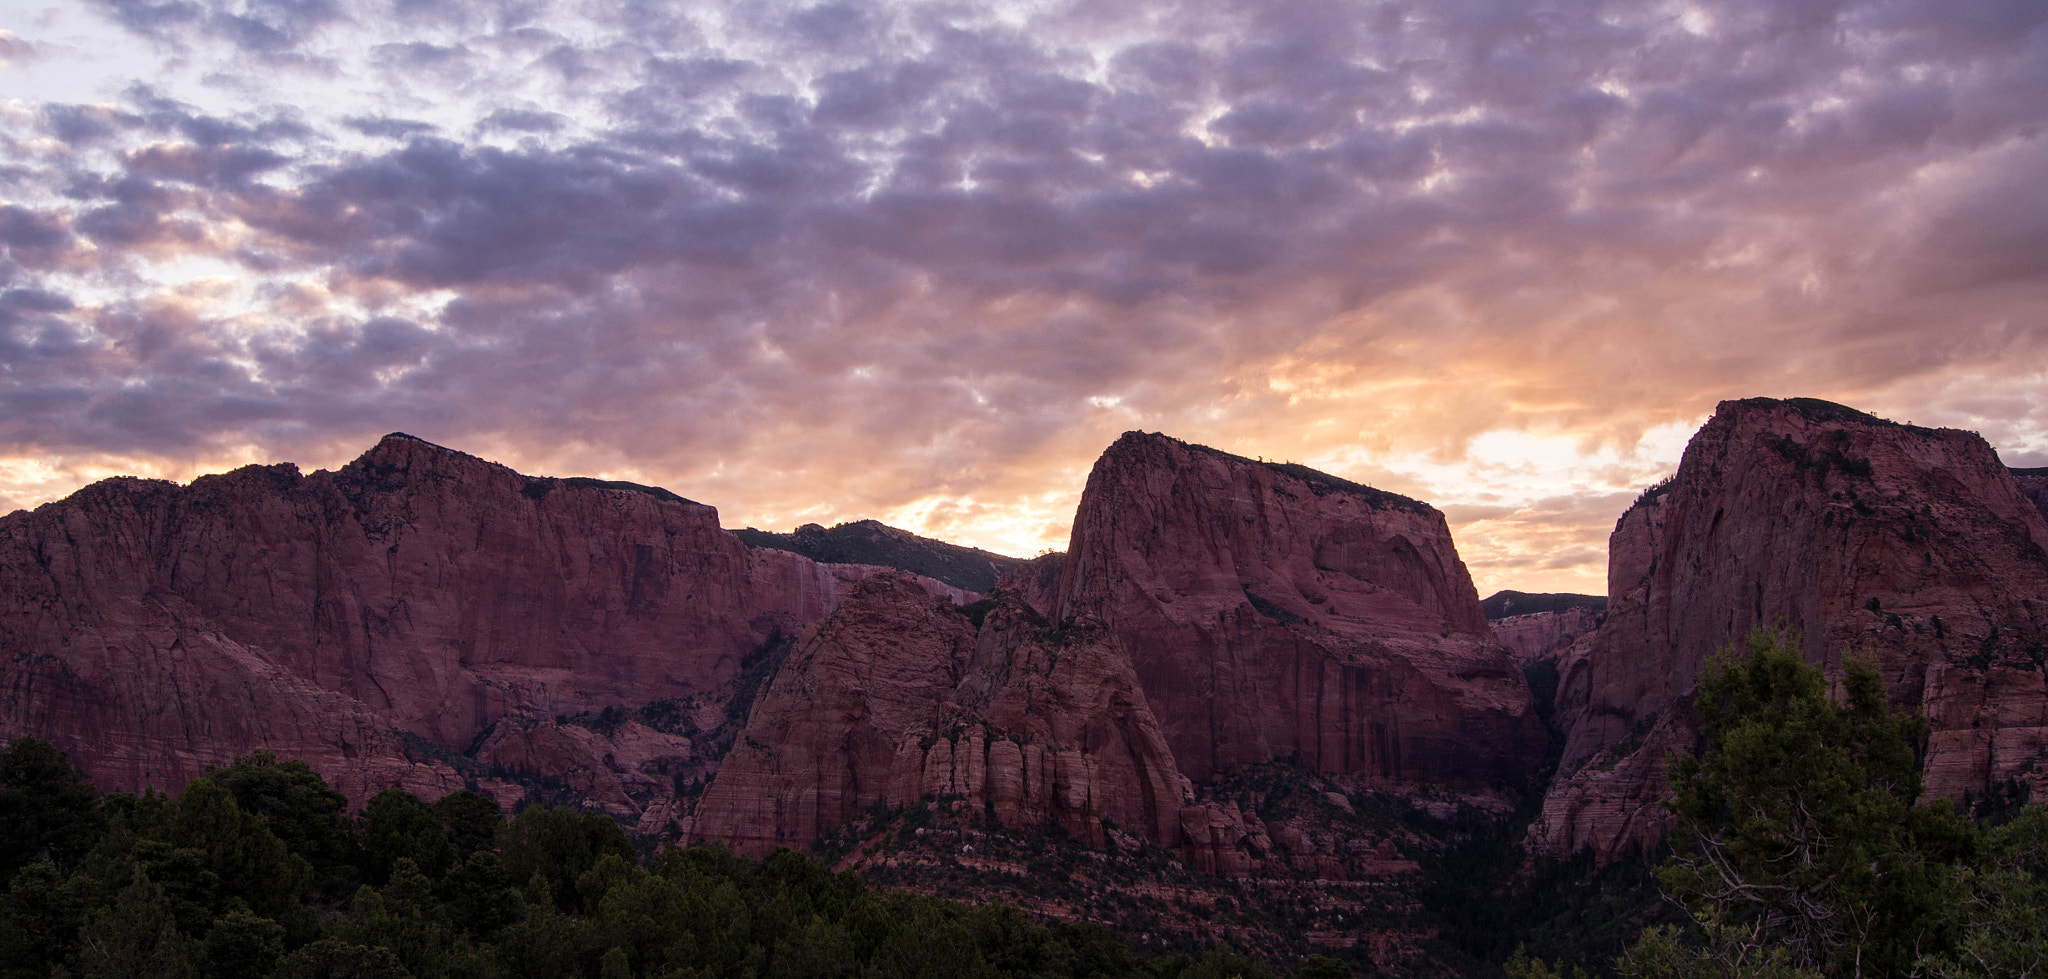 Photograph Kolob Sunrise IV by Erik Anderson on 500px